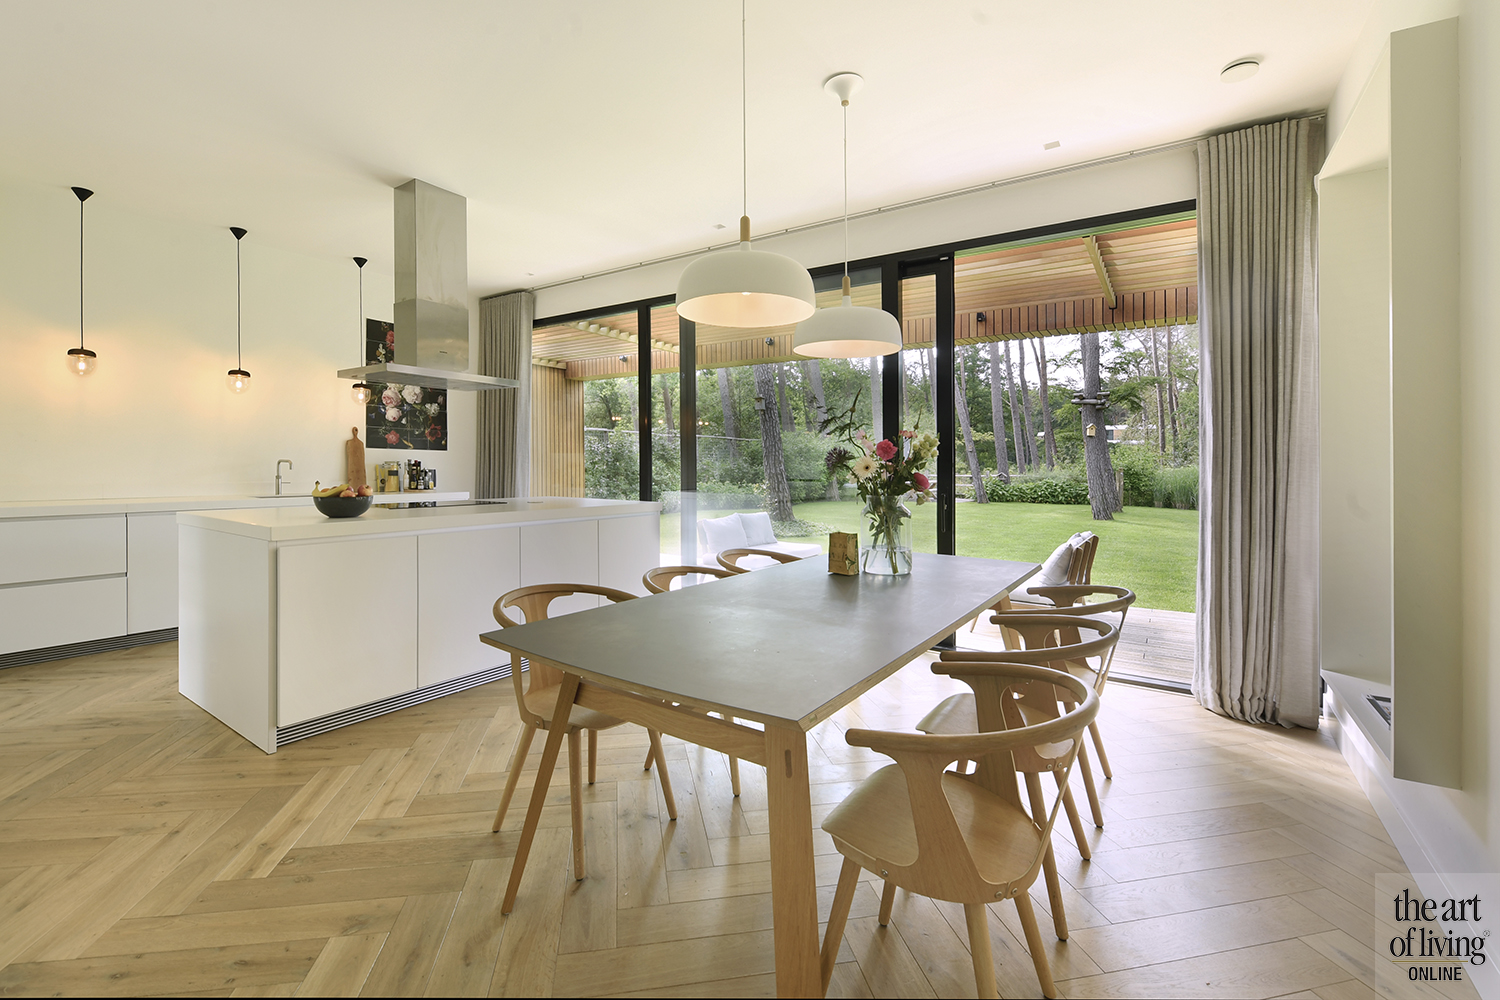 Moderne villa, Kraal Architecten, the art of living